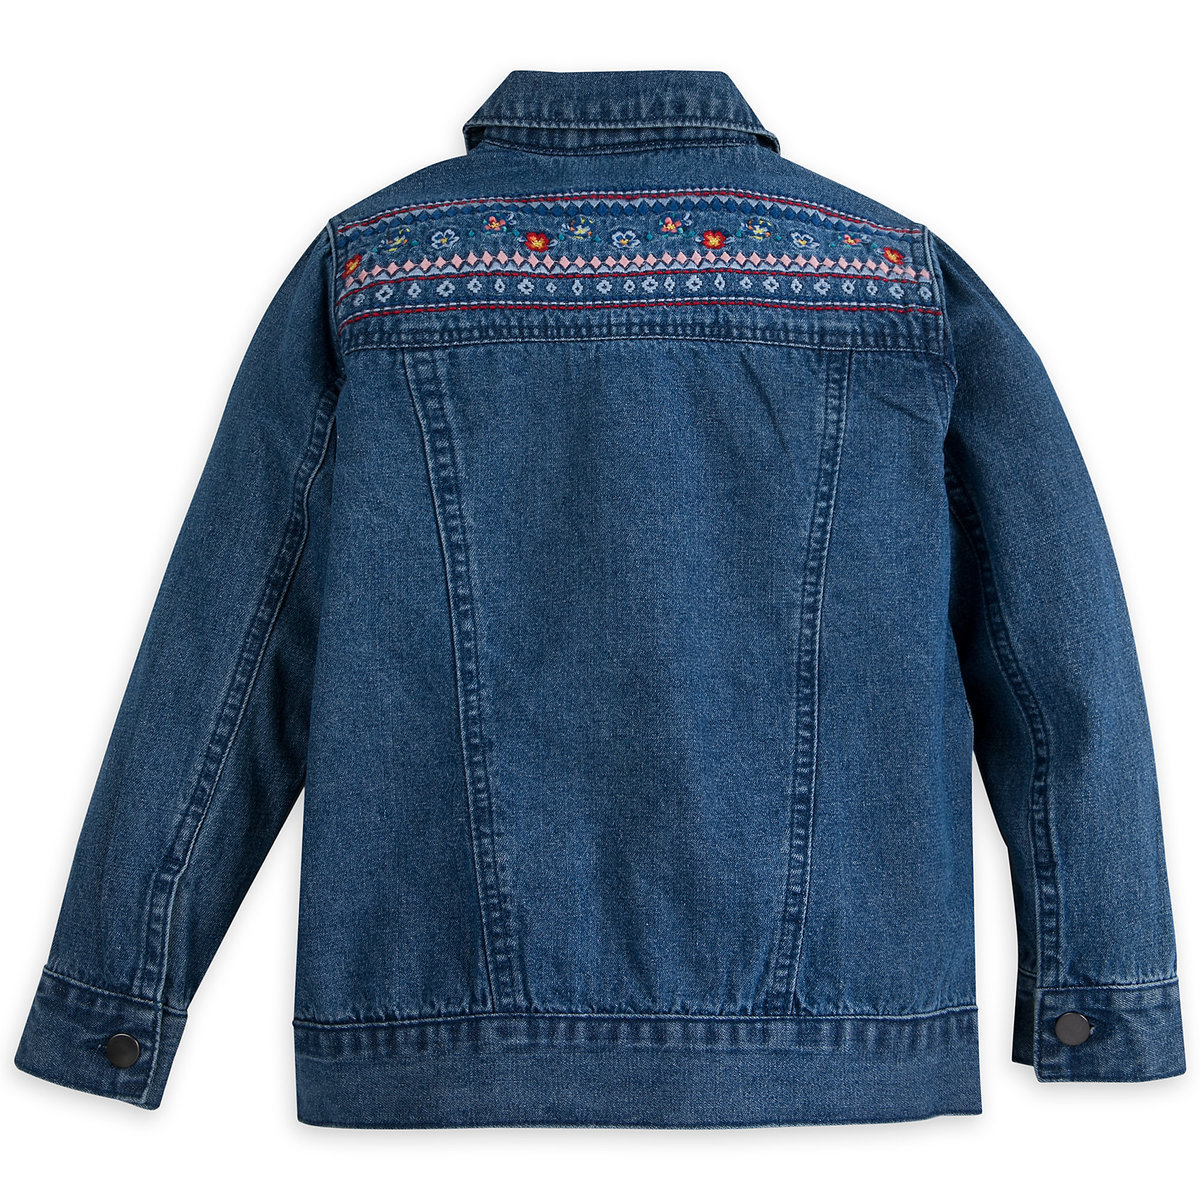 Elena of Avalor Denim Jacket for Girls | shopDisney